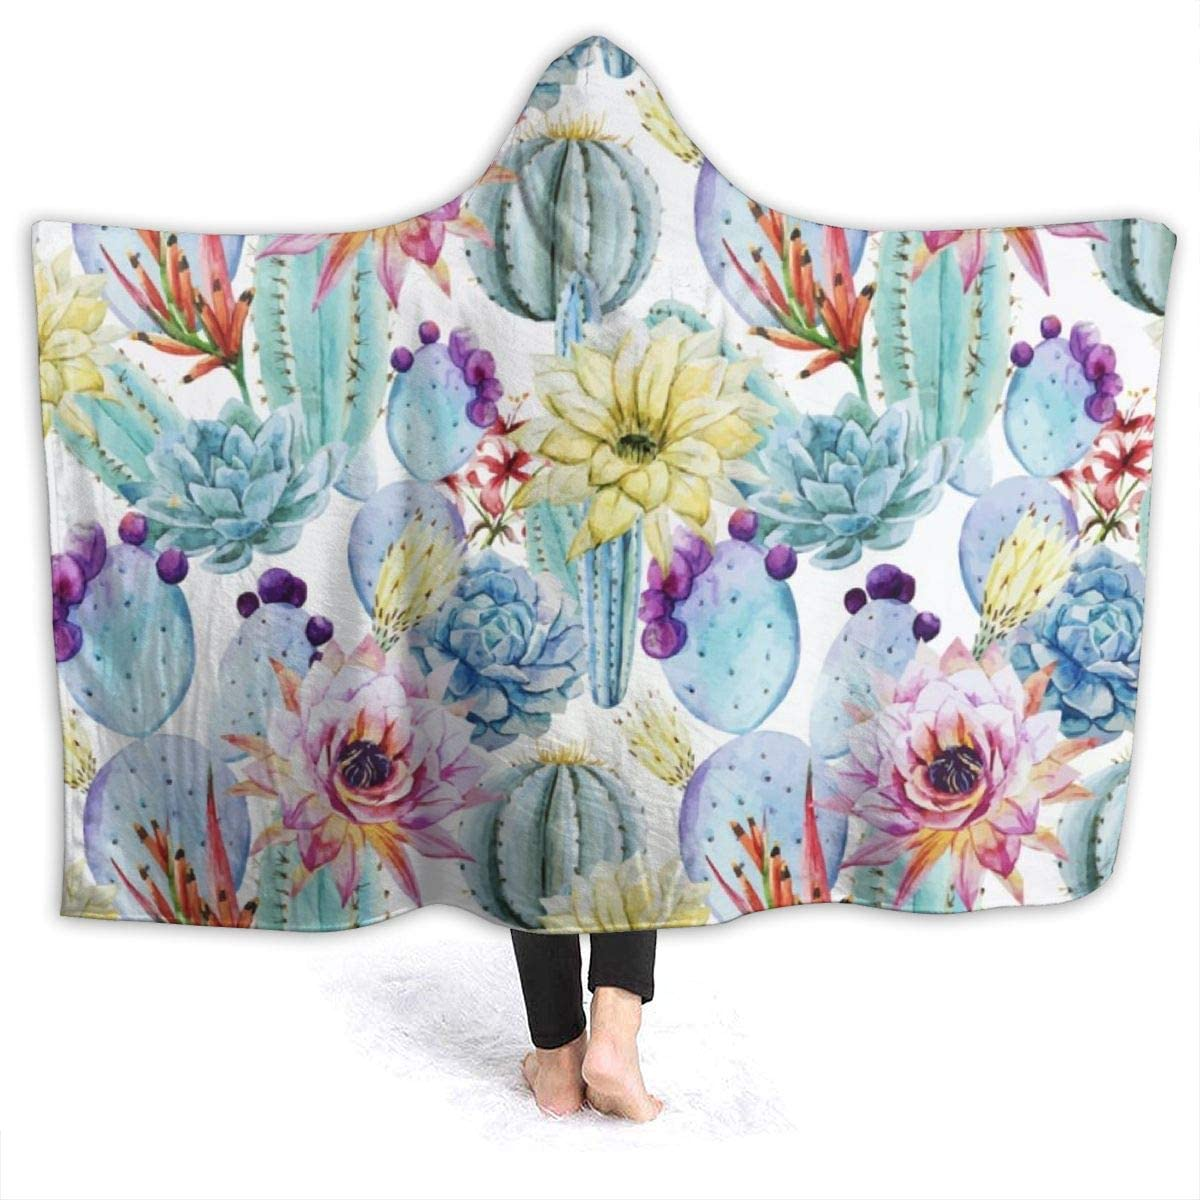 YongColer Luxury Polar Fleece Blanket Super Soft and Warm Fuzzy Plush Lightweight Throw Couch Bed Blankets - Cactus Succulents, 80